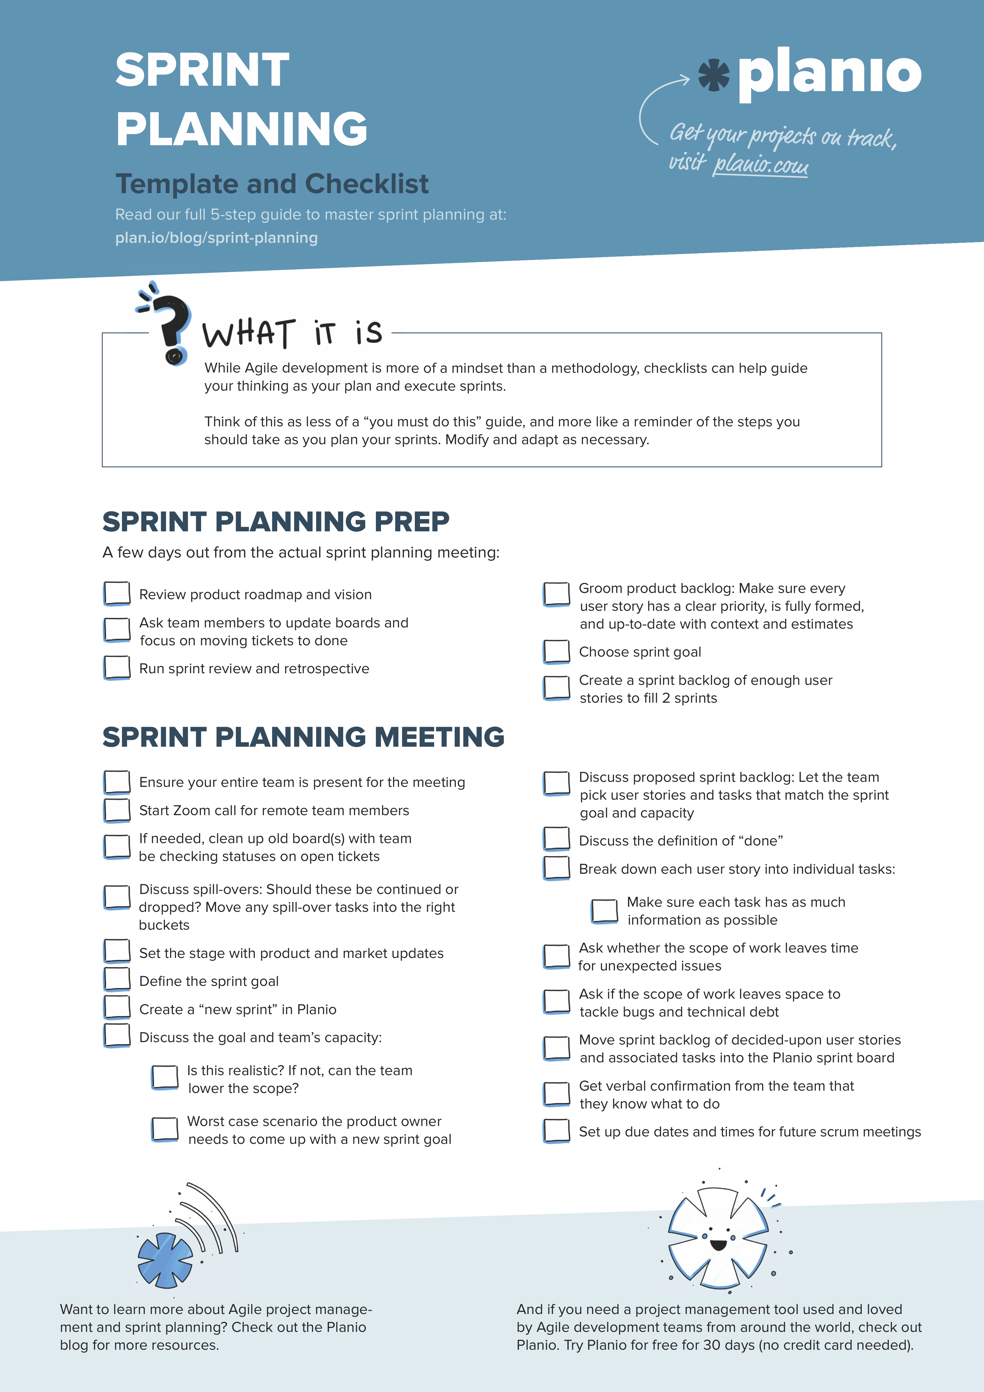 5 Steps to Master Sprint Planning: Template, Checklist and